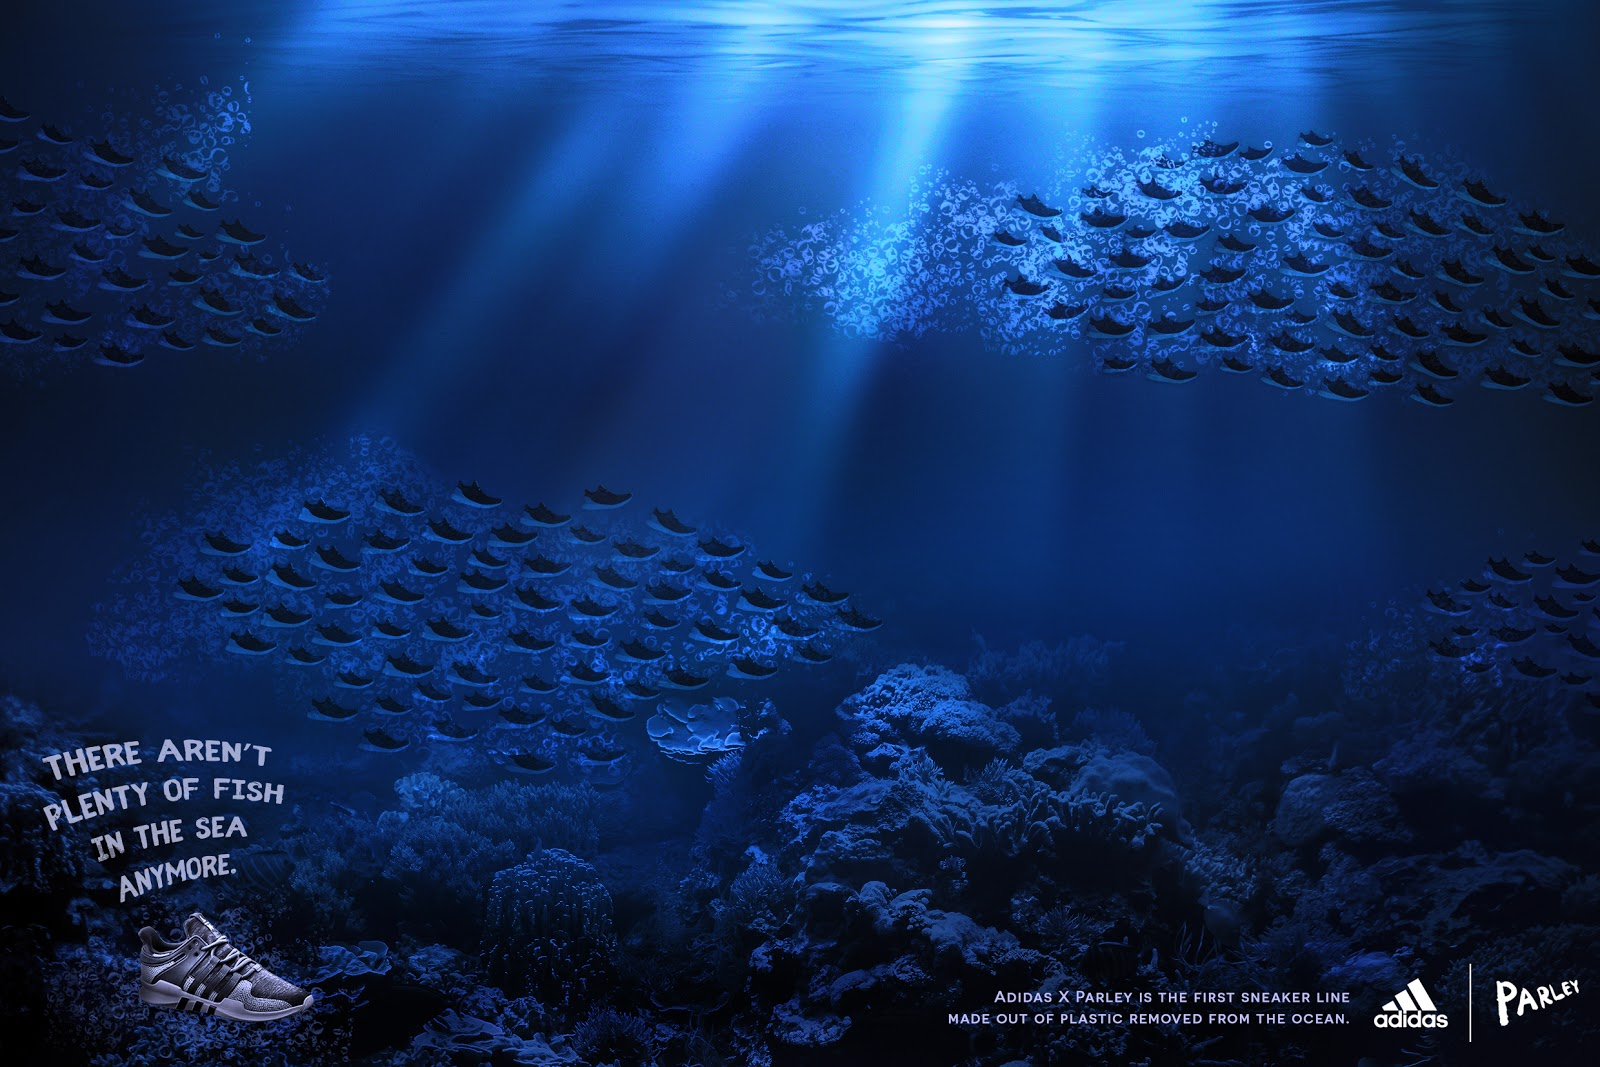 'There Aren't Plenty of Fish in the Sea Anymore' Adidas ad.